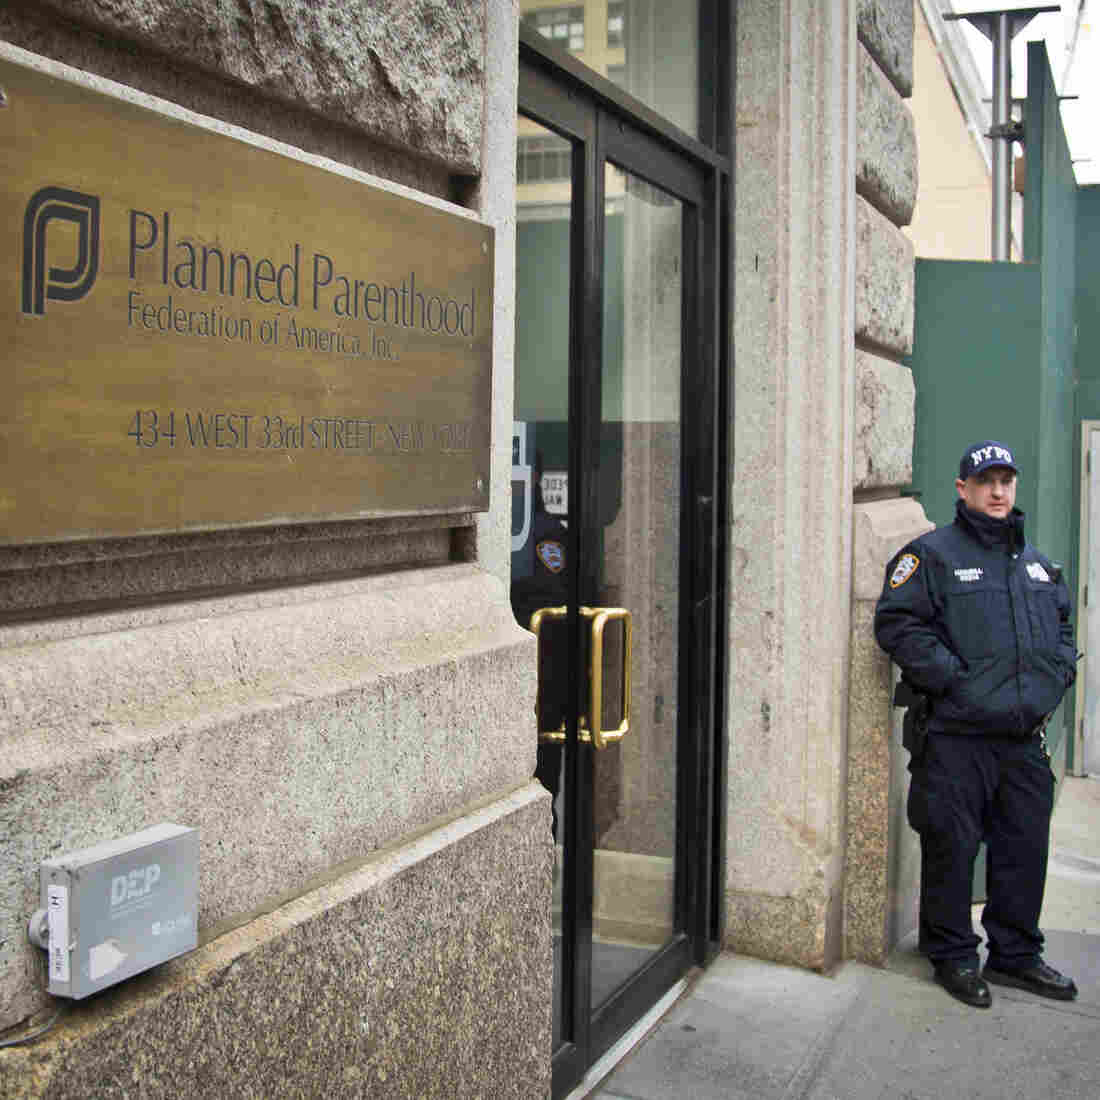 Grand Jury Indicts 2 Behind Undercover Planned Parenthood Videos